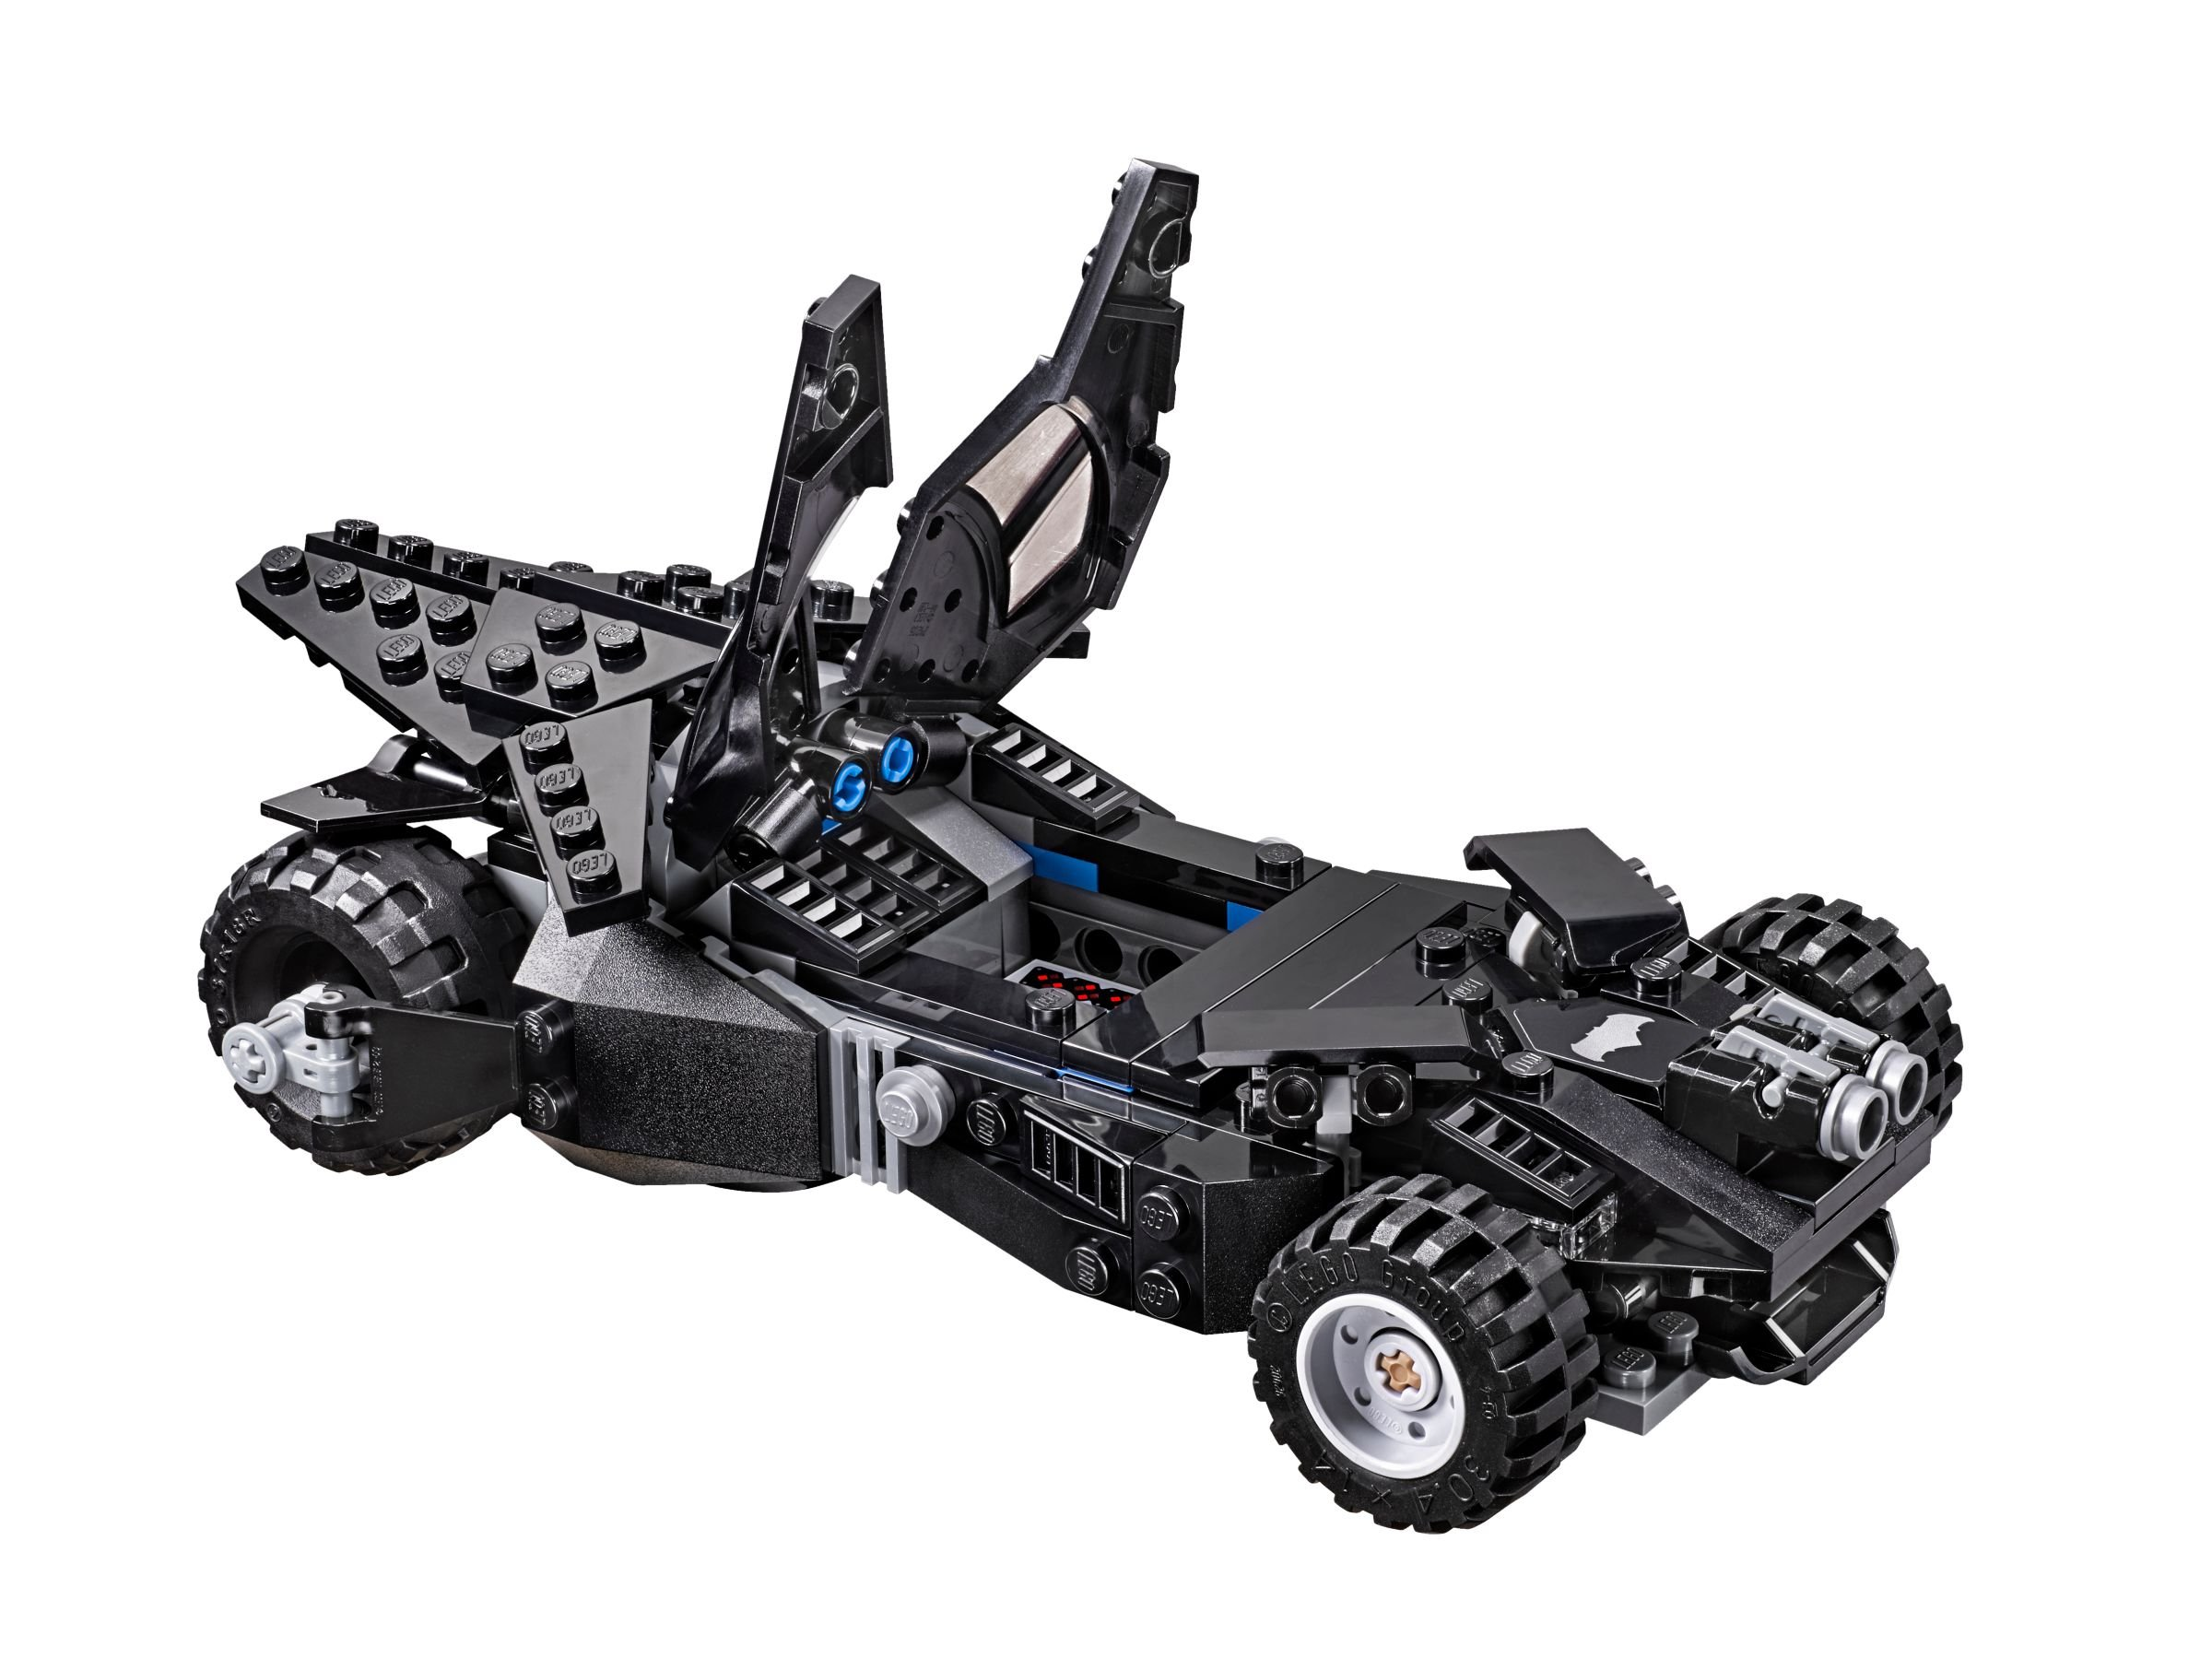 LEGO Super Heroes 76045 Kryptonit-Mission im Batmobil LEGO_76045_alt4.jpg